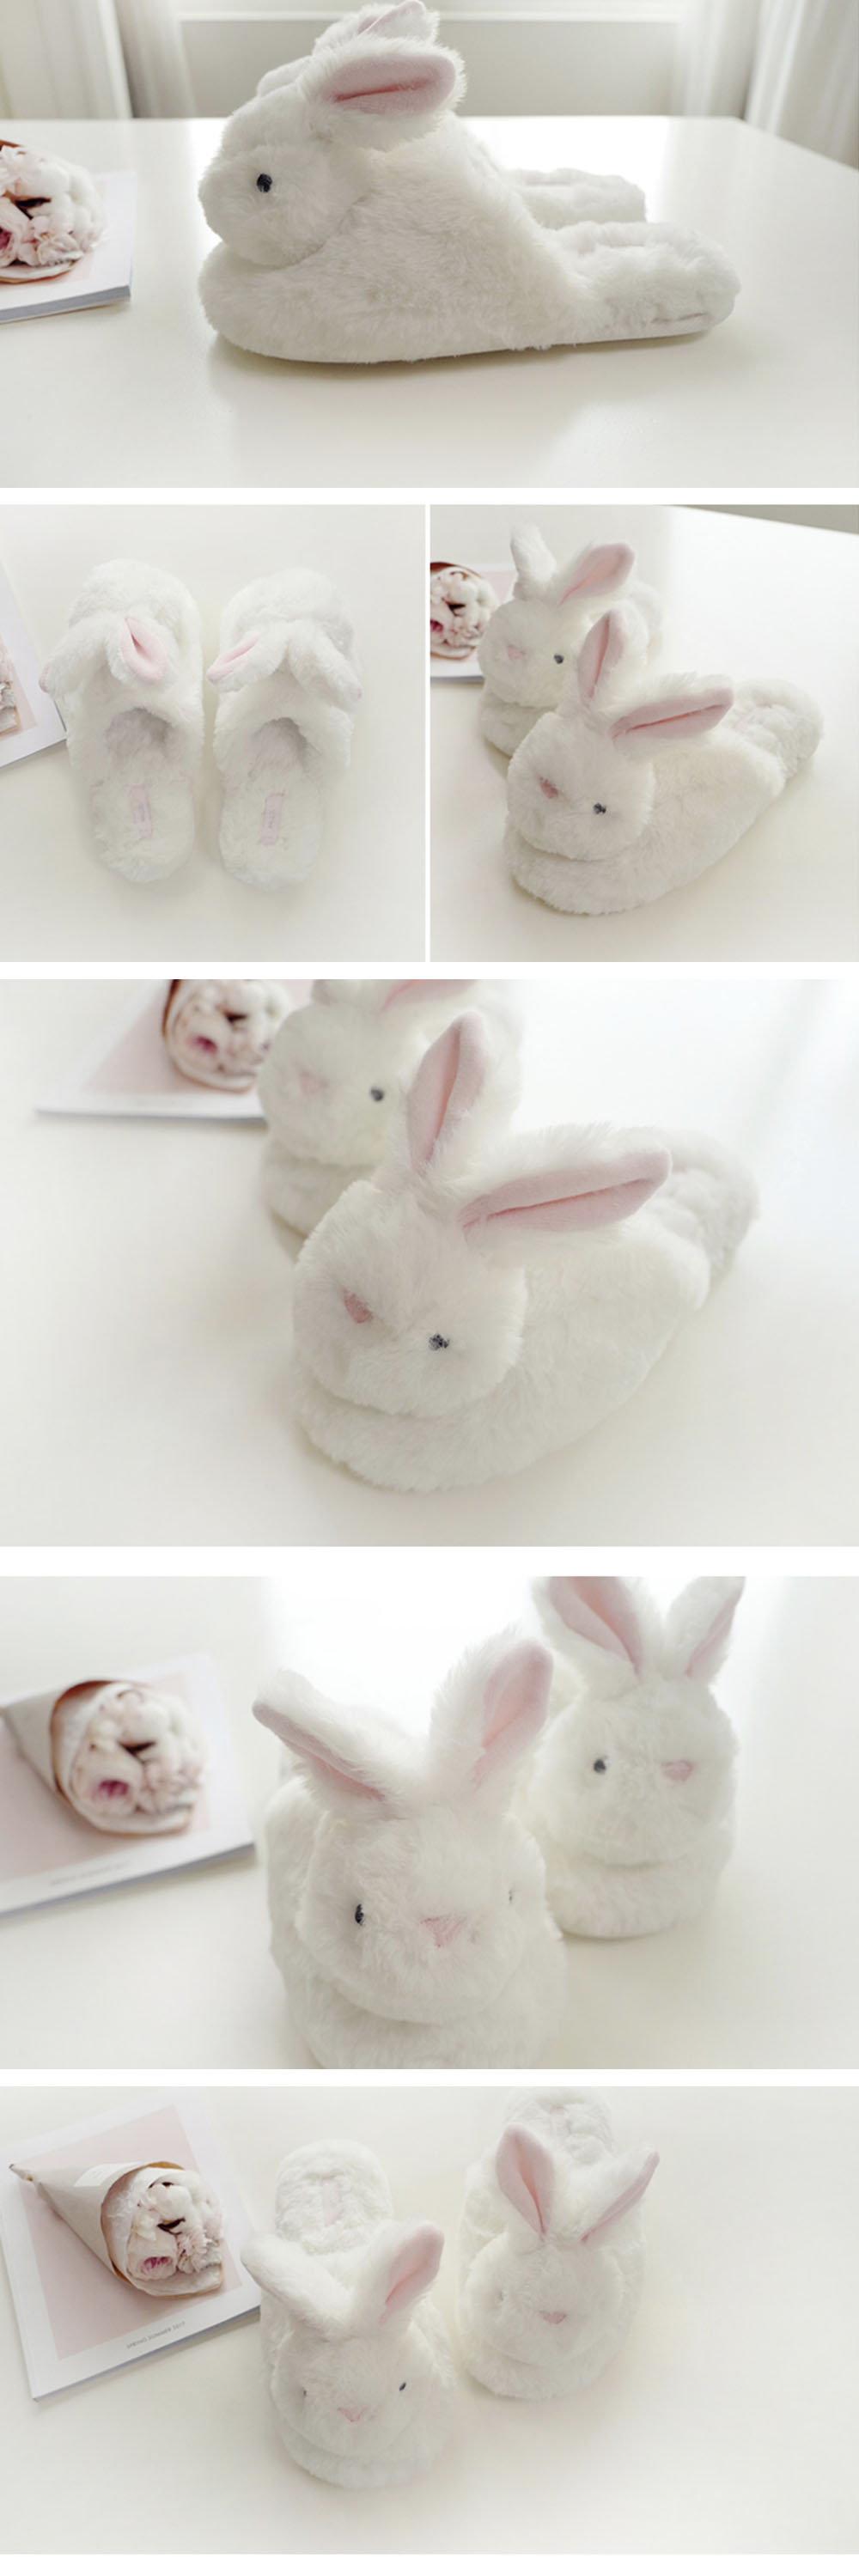 Rabbit Slipper Cute Collection